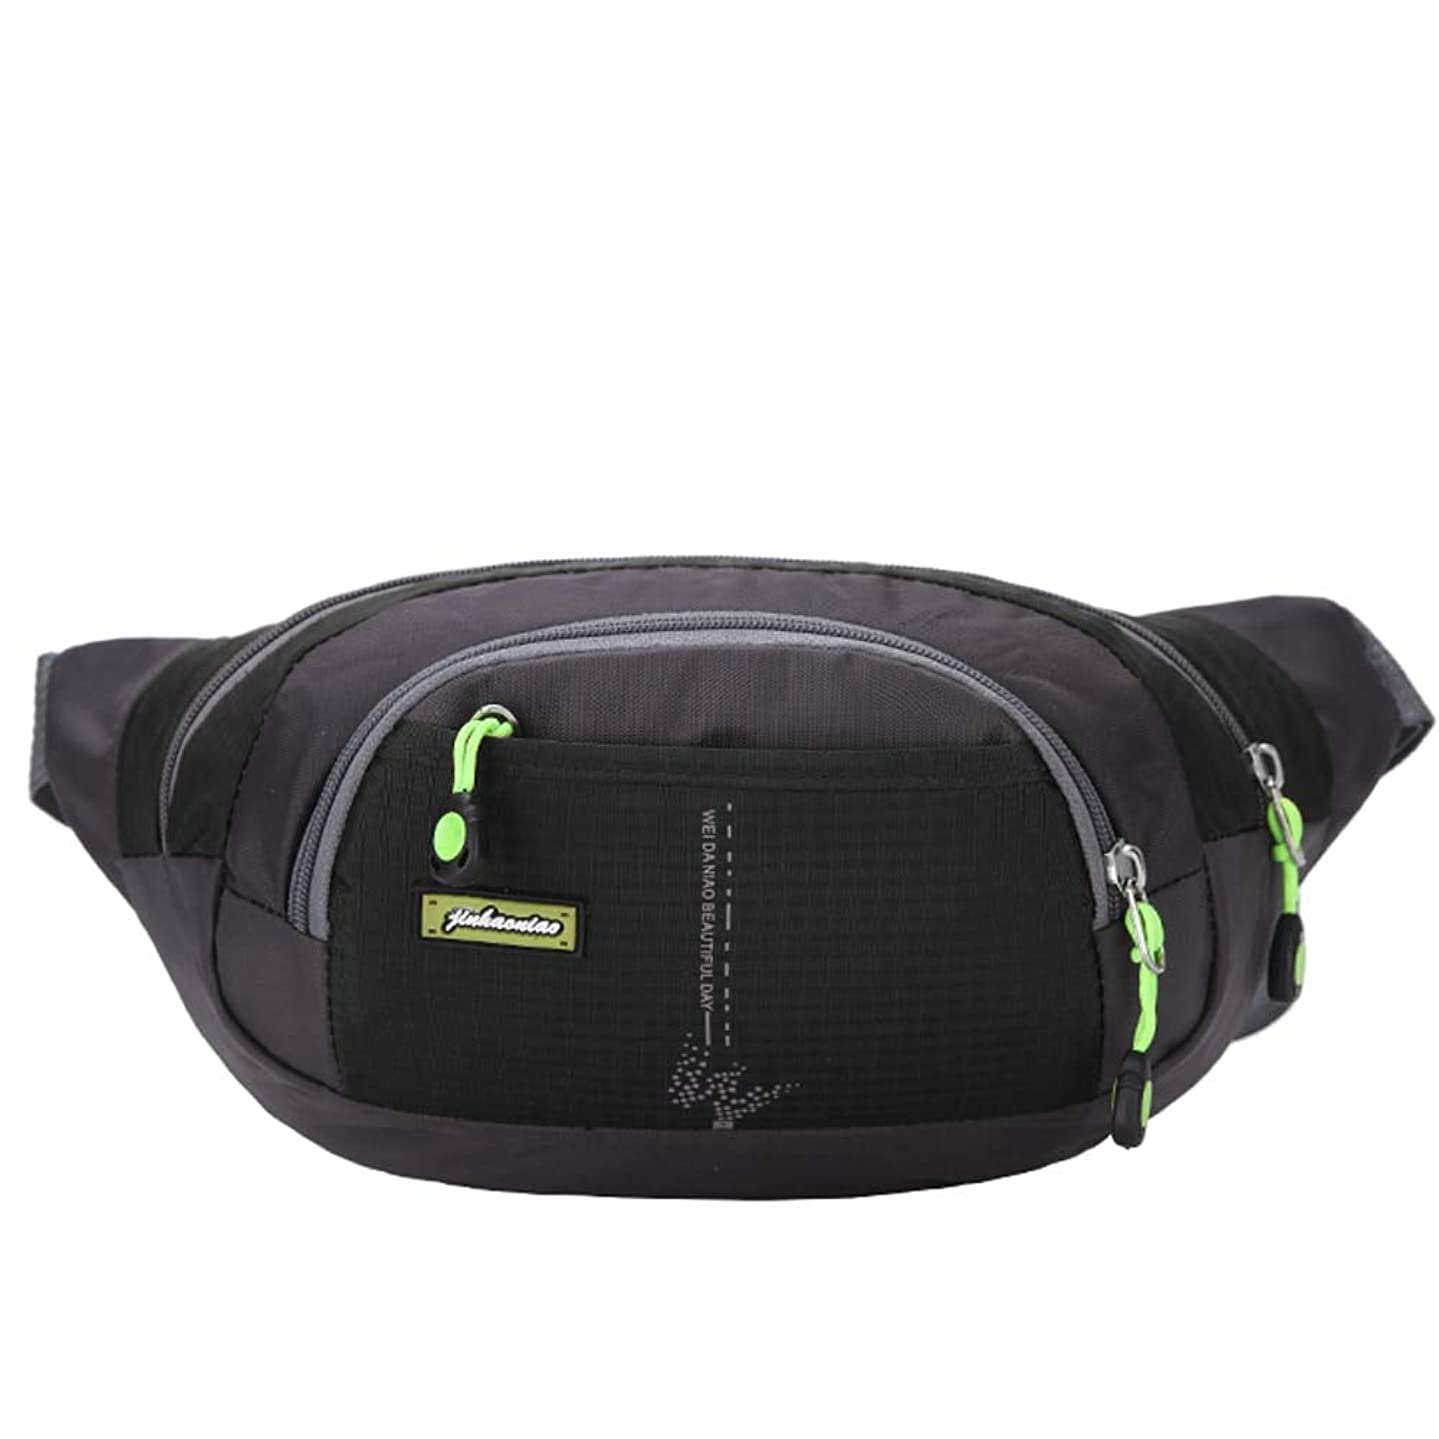 Bowbof - Bright color Waterproof Waist Bag Outdoor Bags Sport Messenger Bag Travel Camping Hiking Waist Chest Pack Pouch Large Capacity